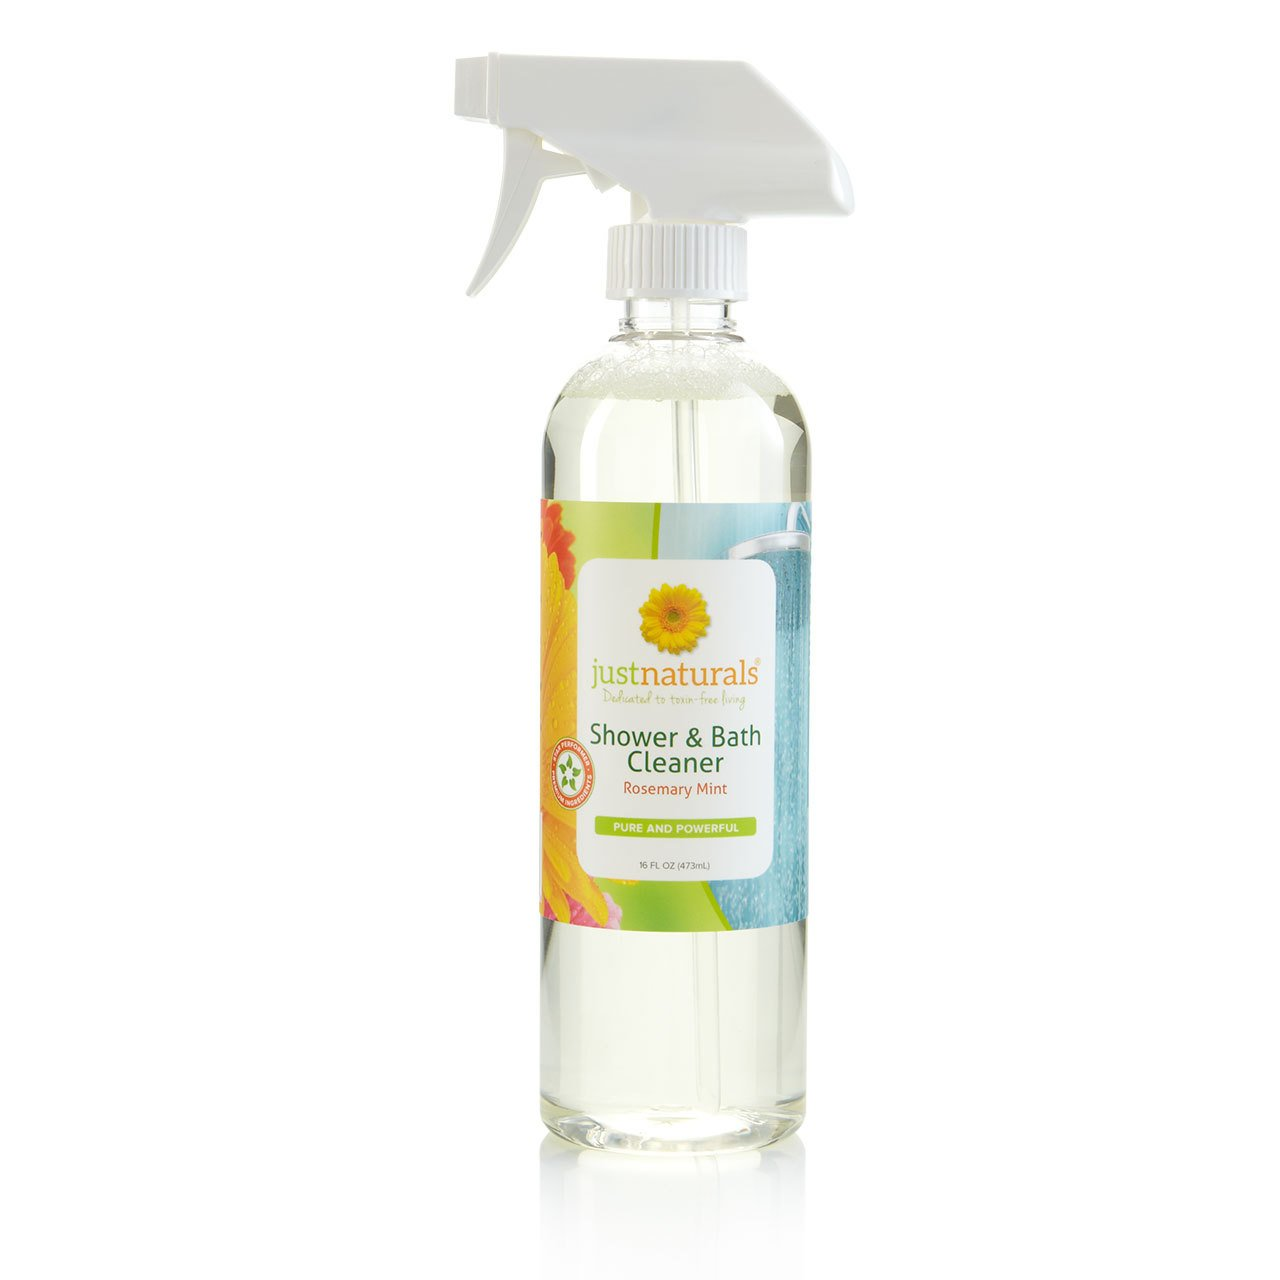 Amazon.com: Just Naturals Ducha & Limpiador De Baño (sin ...